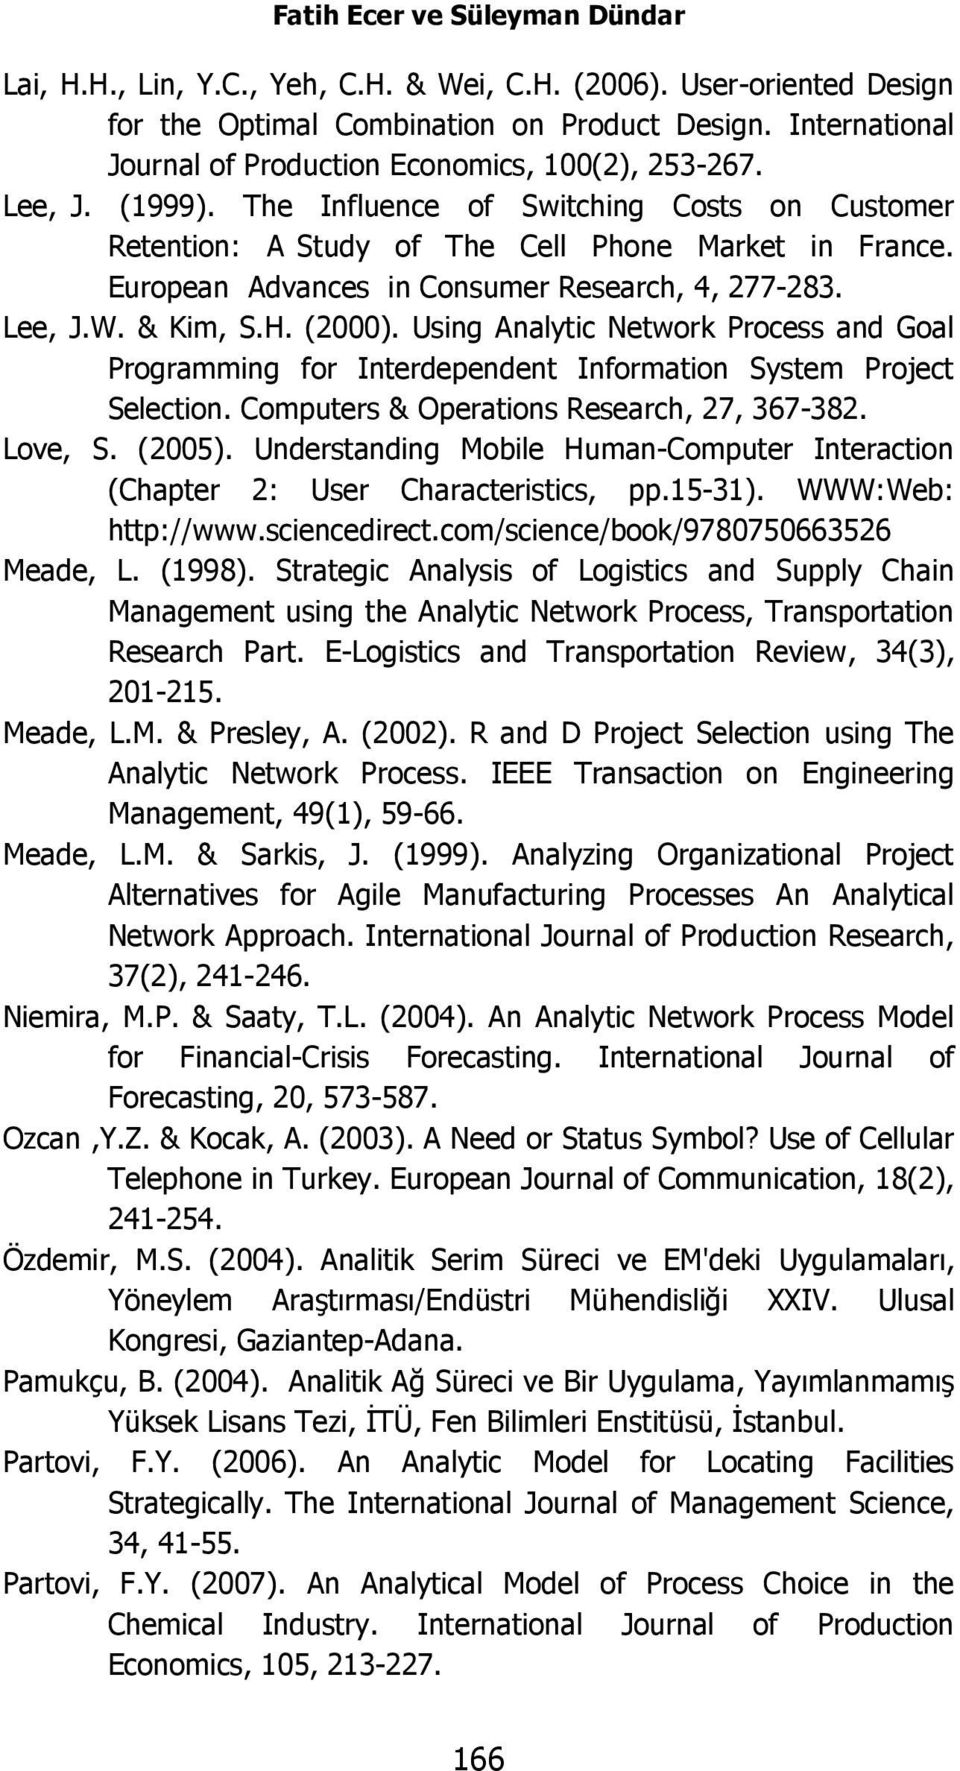 European Advances in Consumer Research, 4, 277-283. Lee, J.W. & Kim, S.H. (2000). Using Analytic Network Process and Goal Programming for Interdependent Information System Project Selection.